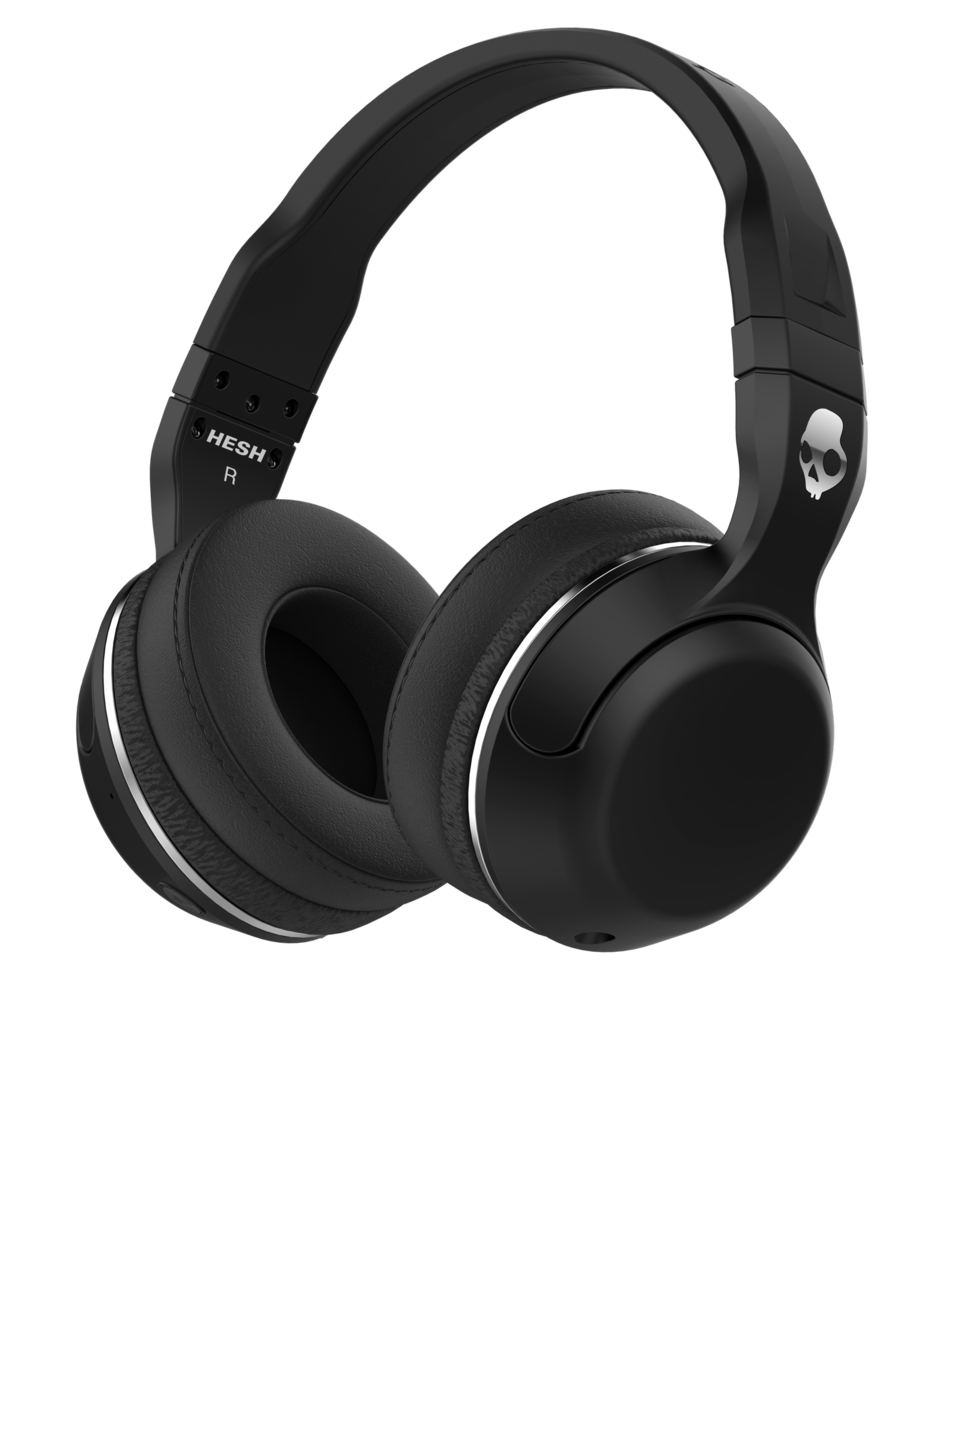 Buy Skullcandy Hesh 2 Wireless Bluetooth Headphone at Walmart.com ... aed06af7a48e